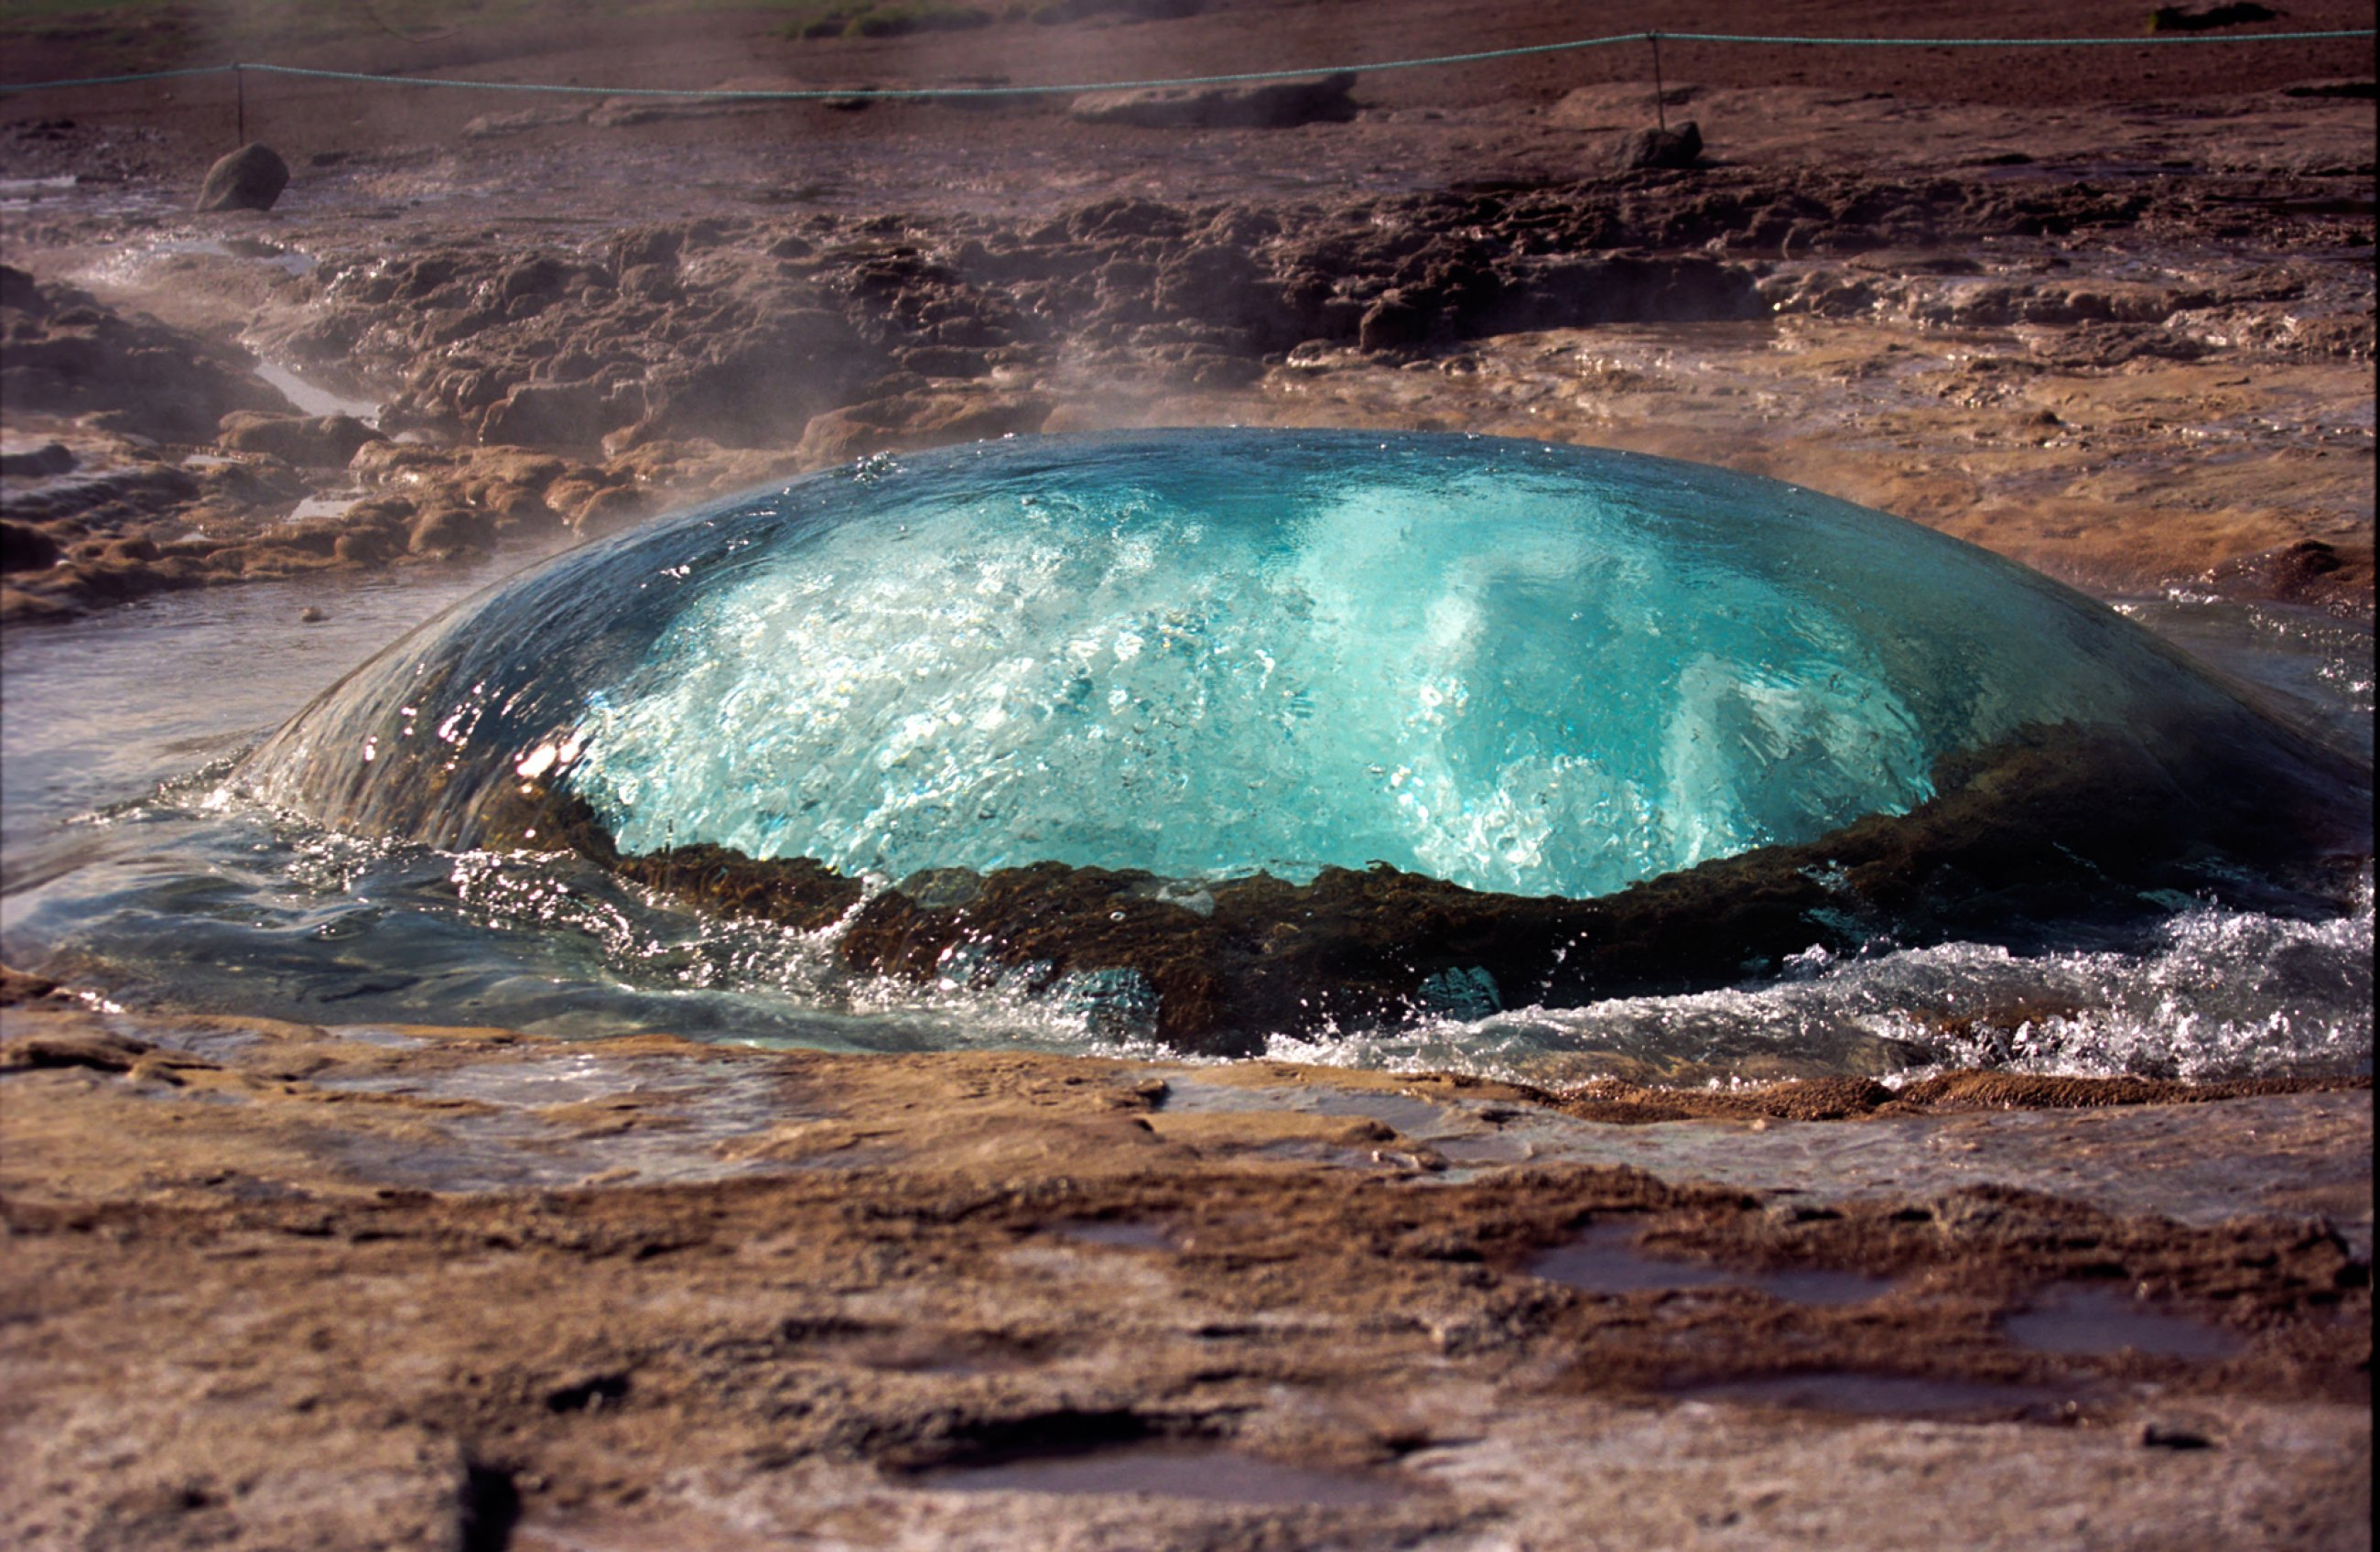 https://bubo.sk/uploads/galleries/7536/strokkur-geysir-iceland-2005-4-wikimedia-6-.jpg